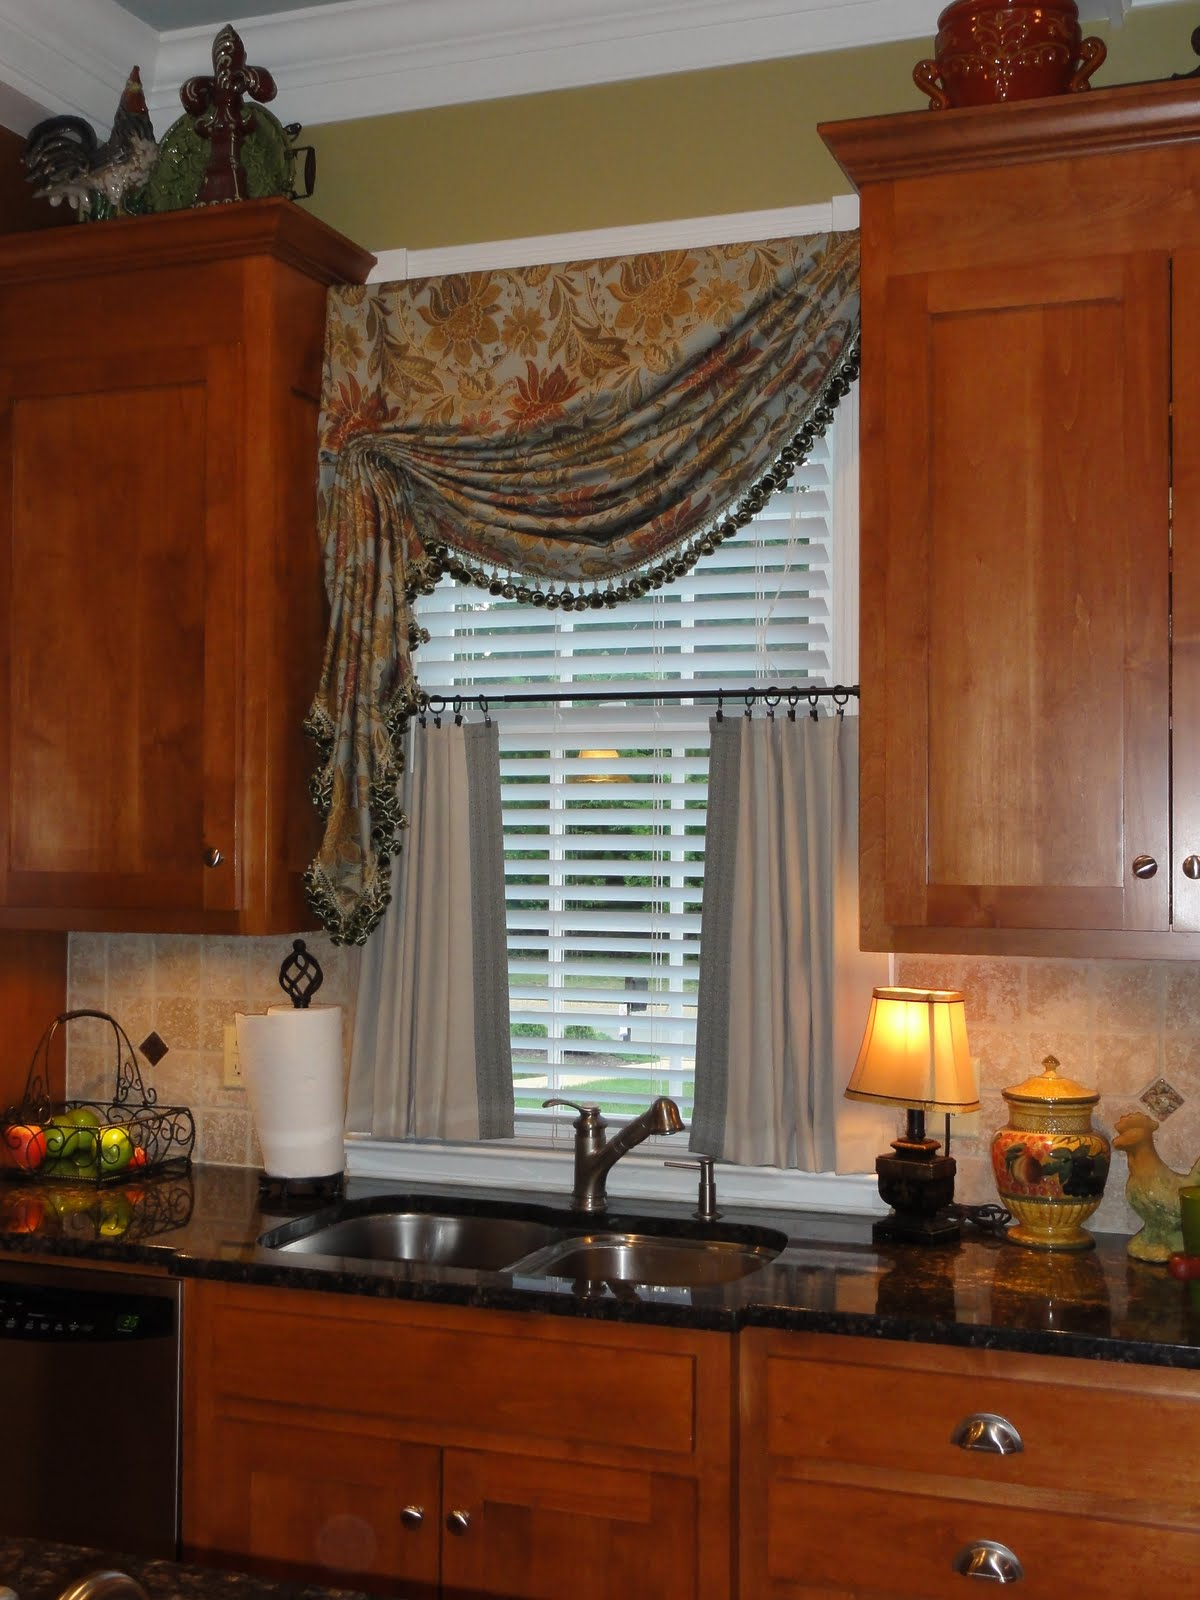 Simply by sabrina kitchen window treatment add on - Kitchen window treatments ideas ...